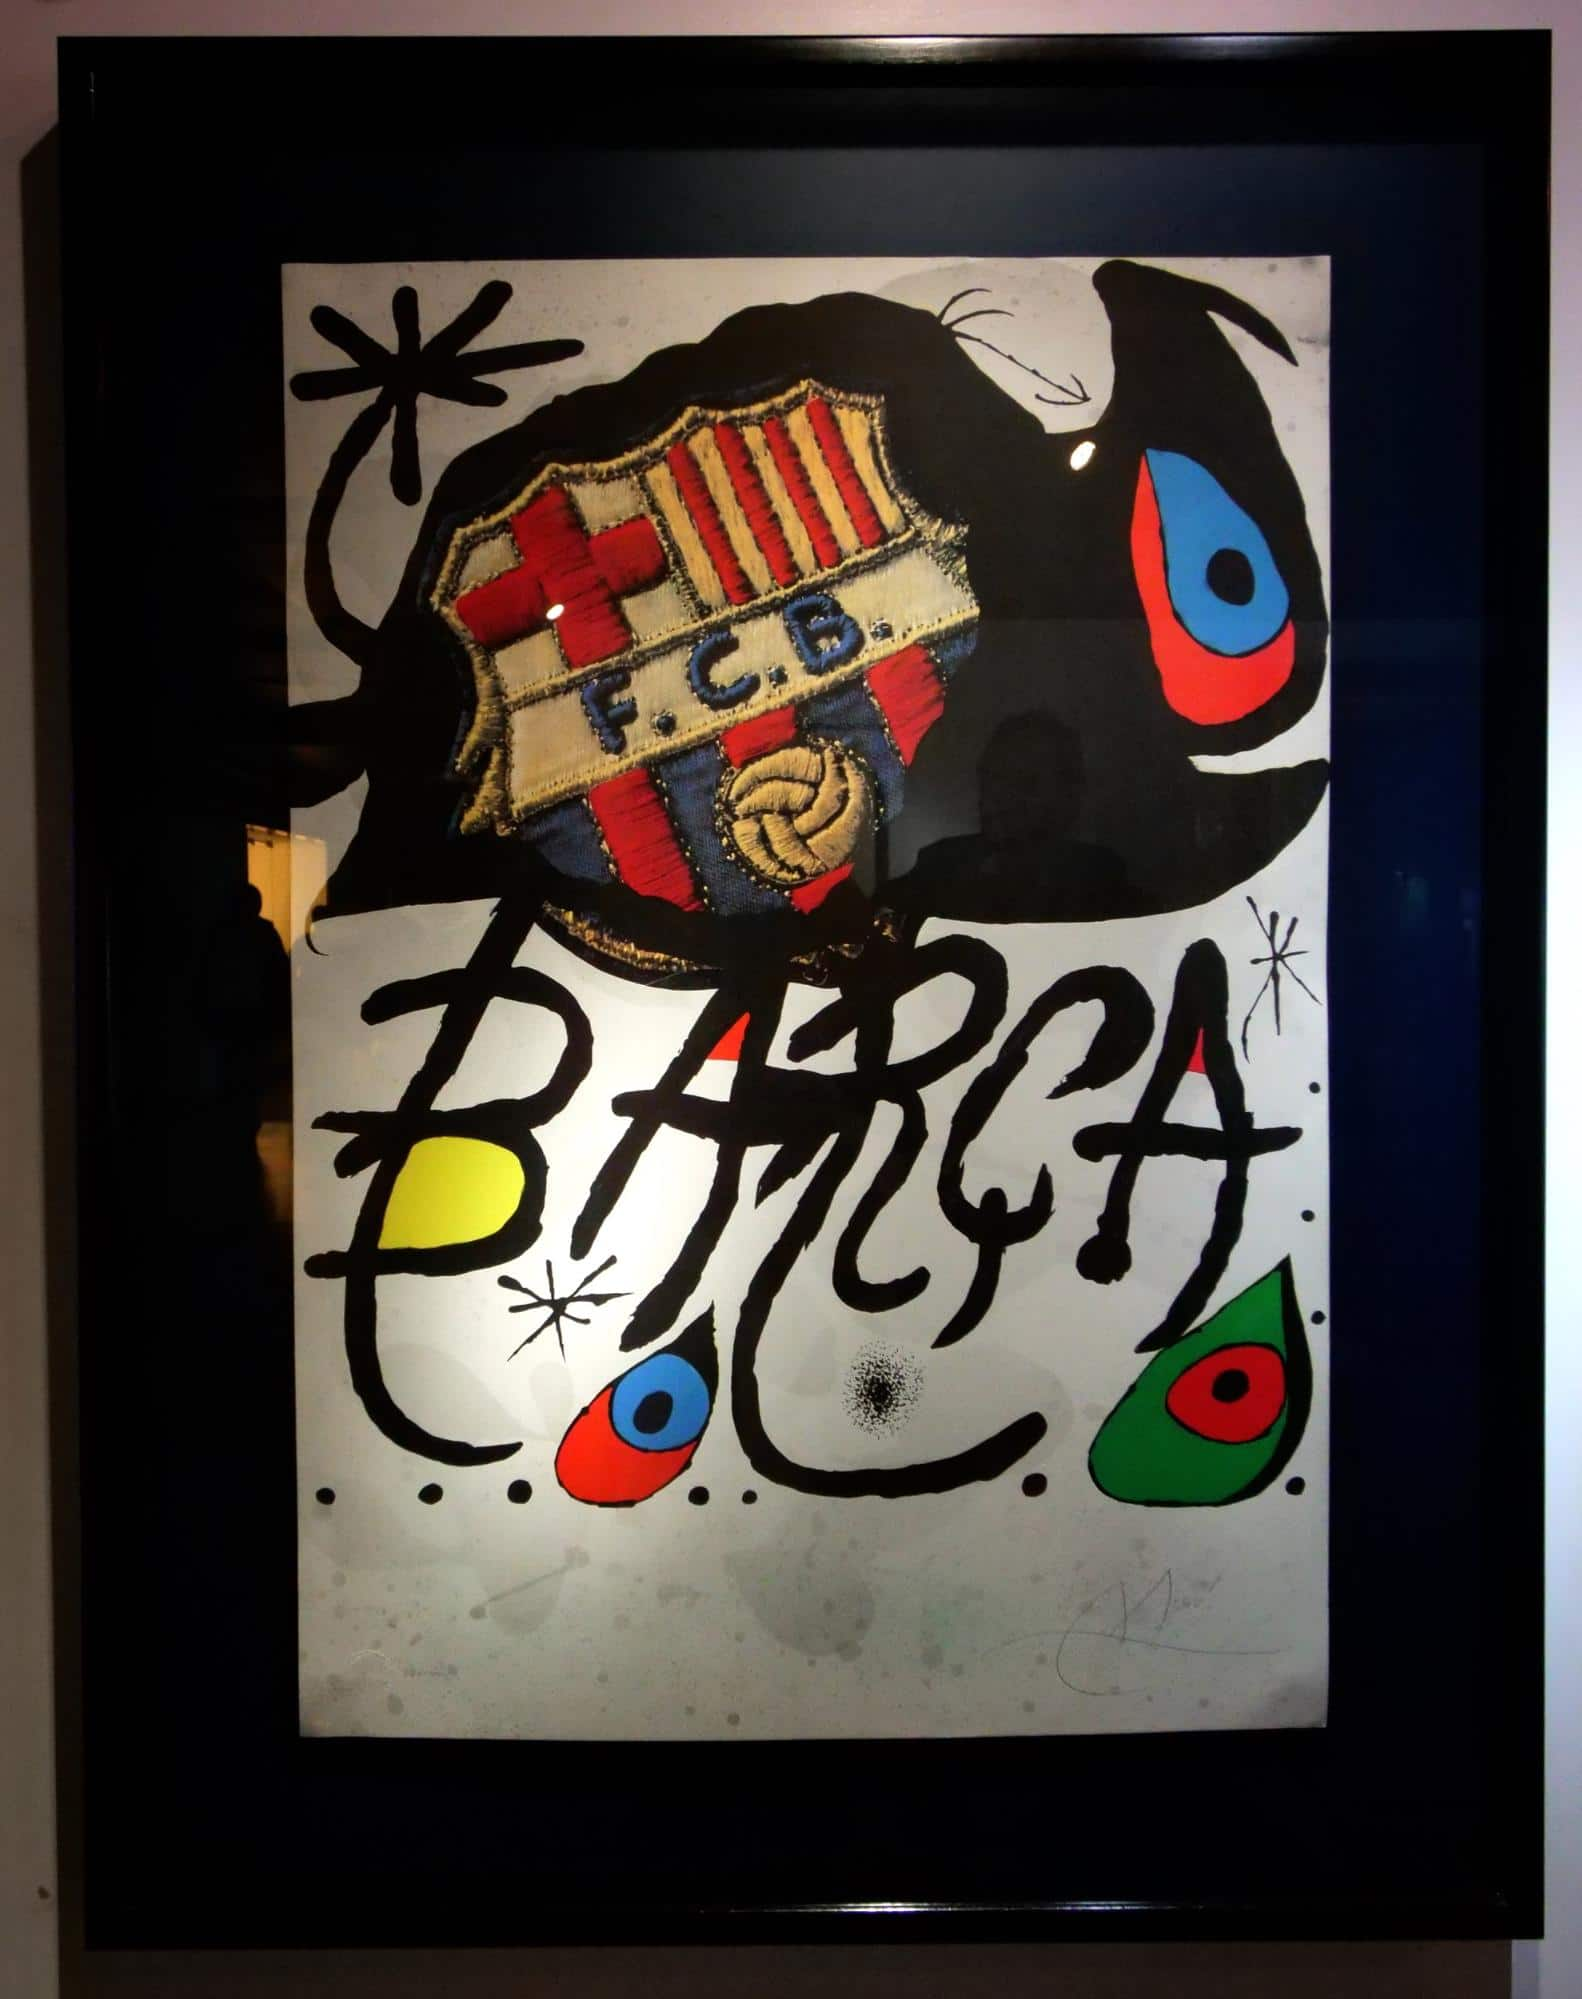 Miro's painting for FC Barcelona